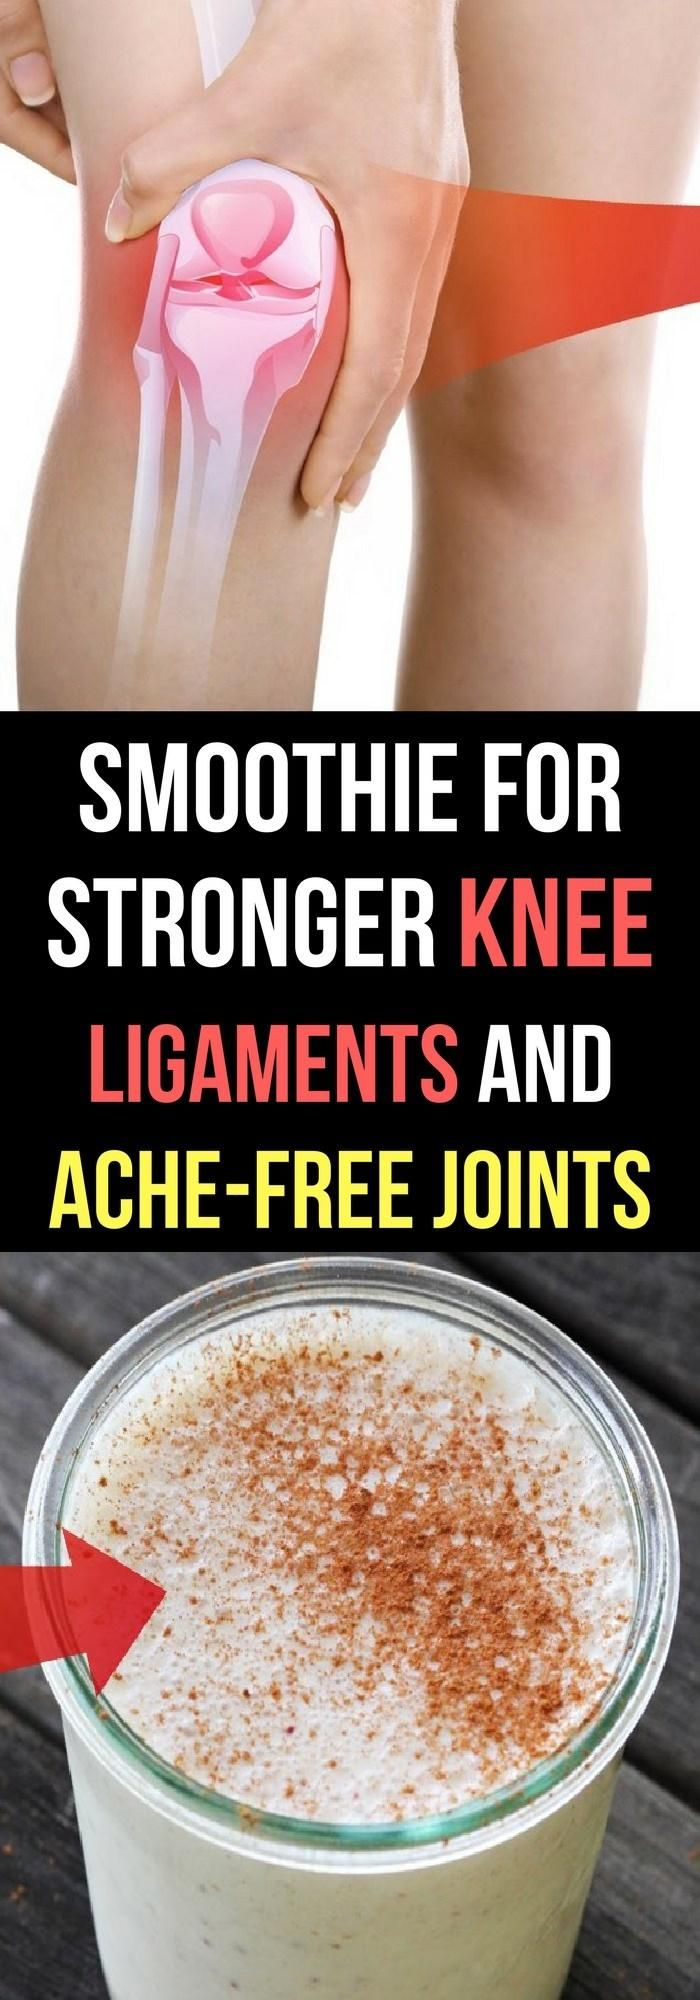 Smoothie for Stronger Knee Ligaments and Ache-free Joints